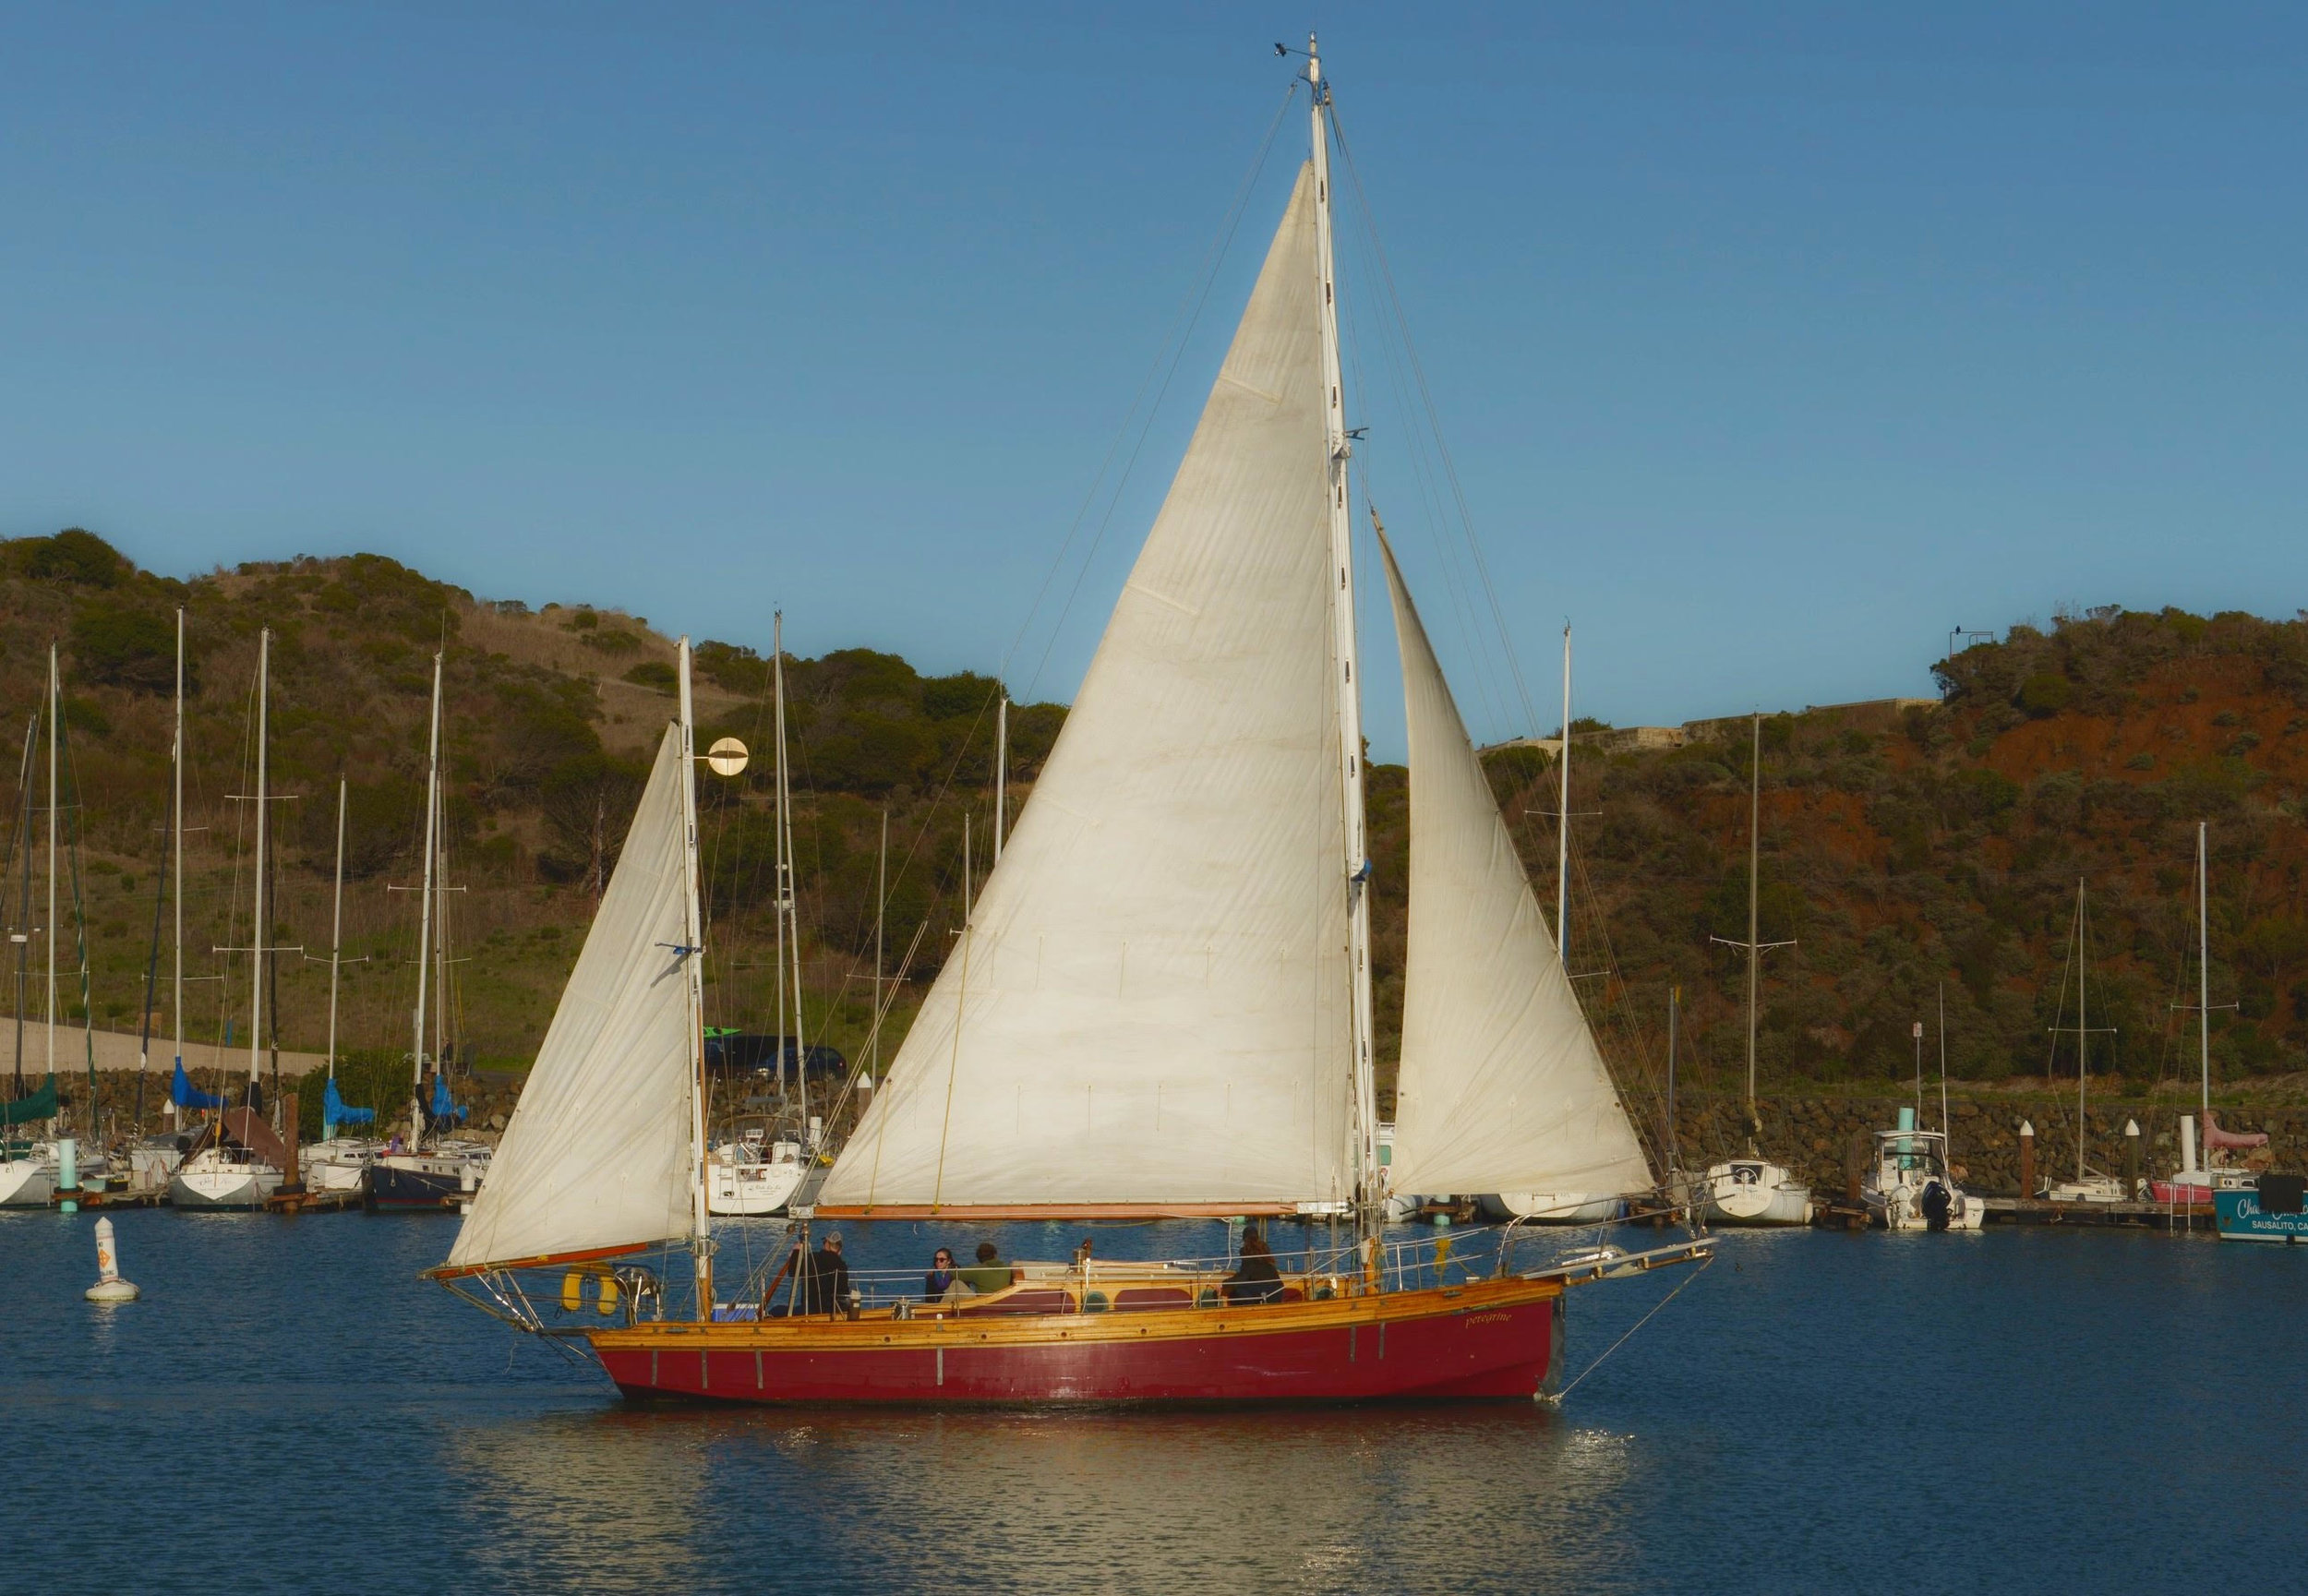 PEREGRINE   Peregrine is a 45 foot classic mahogany yawl built in the 1940s. She is a smooth stylish ride on San Francisco Bay. She features a terrific menu from our grill if lunch is in your plans.   Length:  45 feet  Number of Passengers:  6